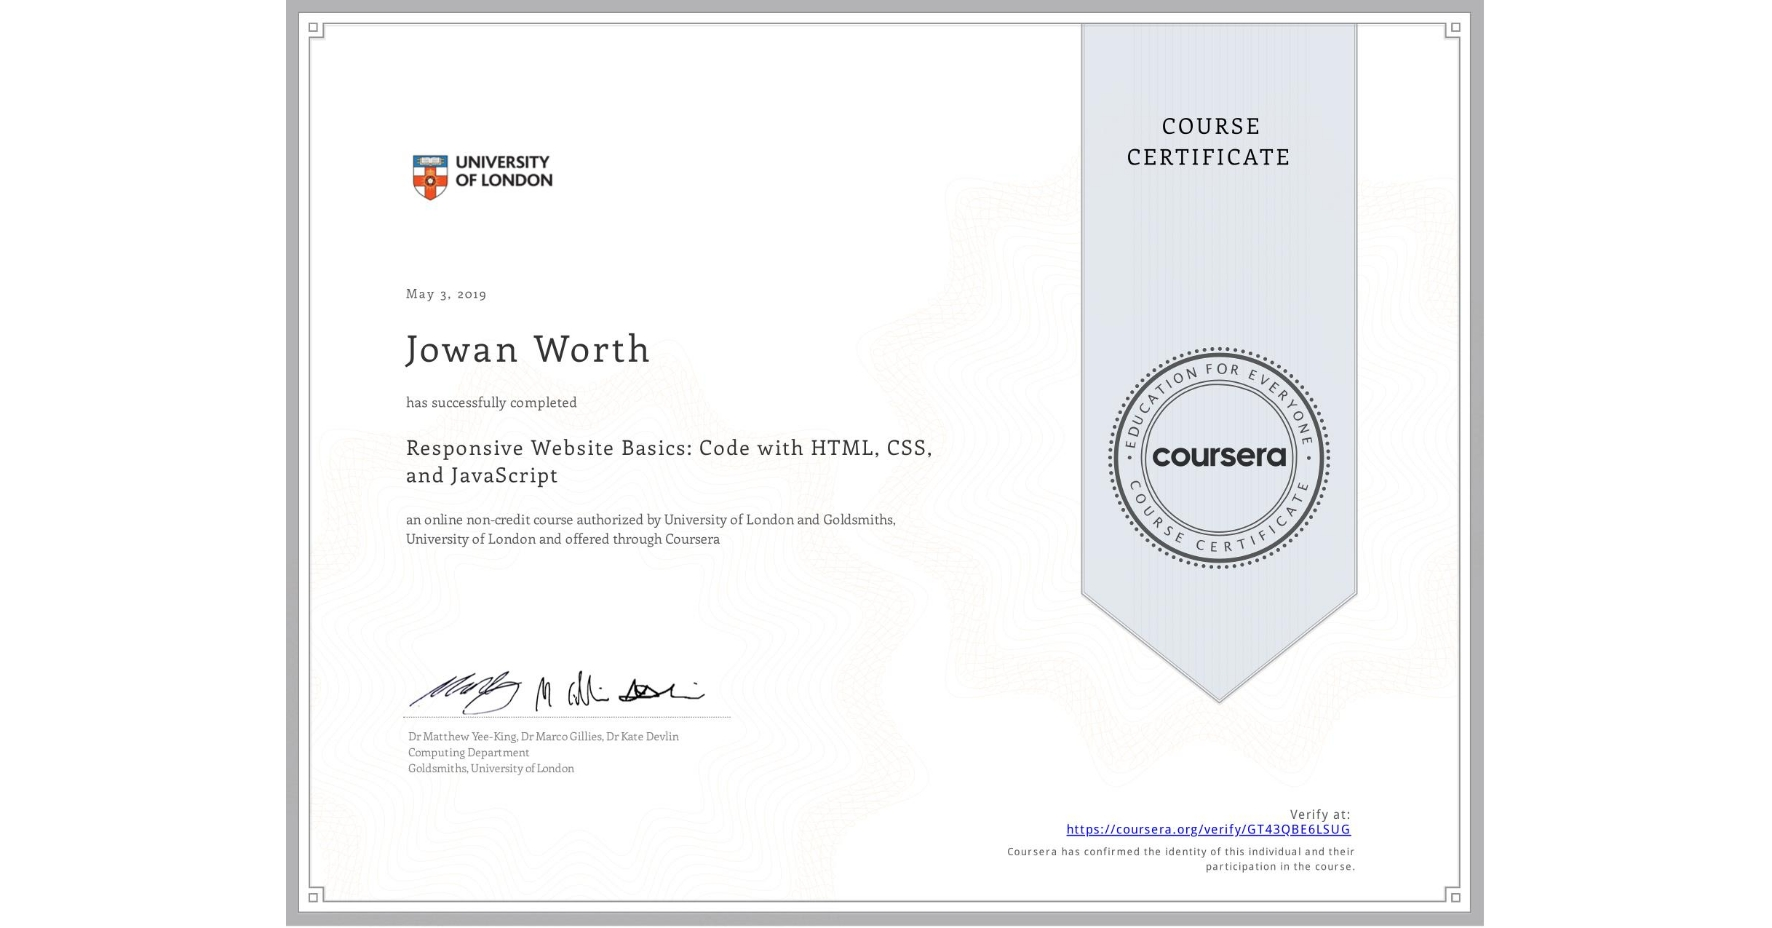 View certificate for Jowan Worth, Responsive Website Basics: Code with HTML, CSS, and JavaScript , an online non-credit course authorized by University of London & Goldsmiths, University of London and offered through Coursera